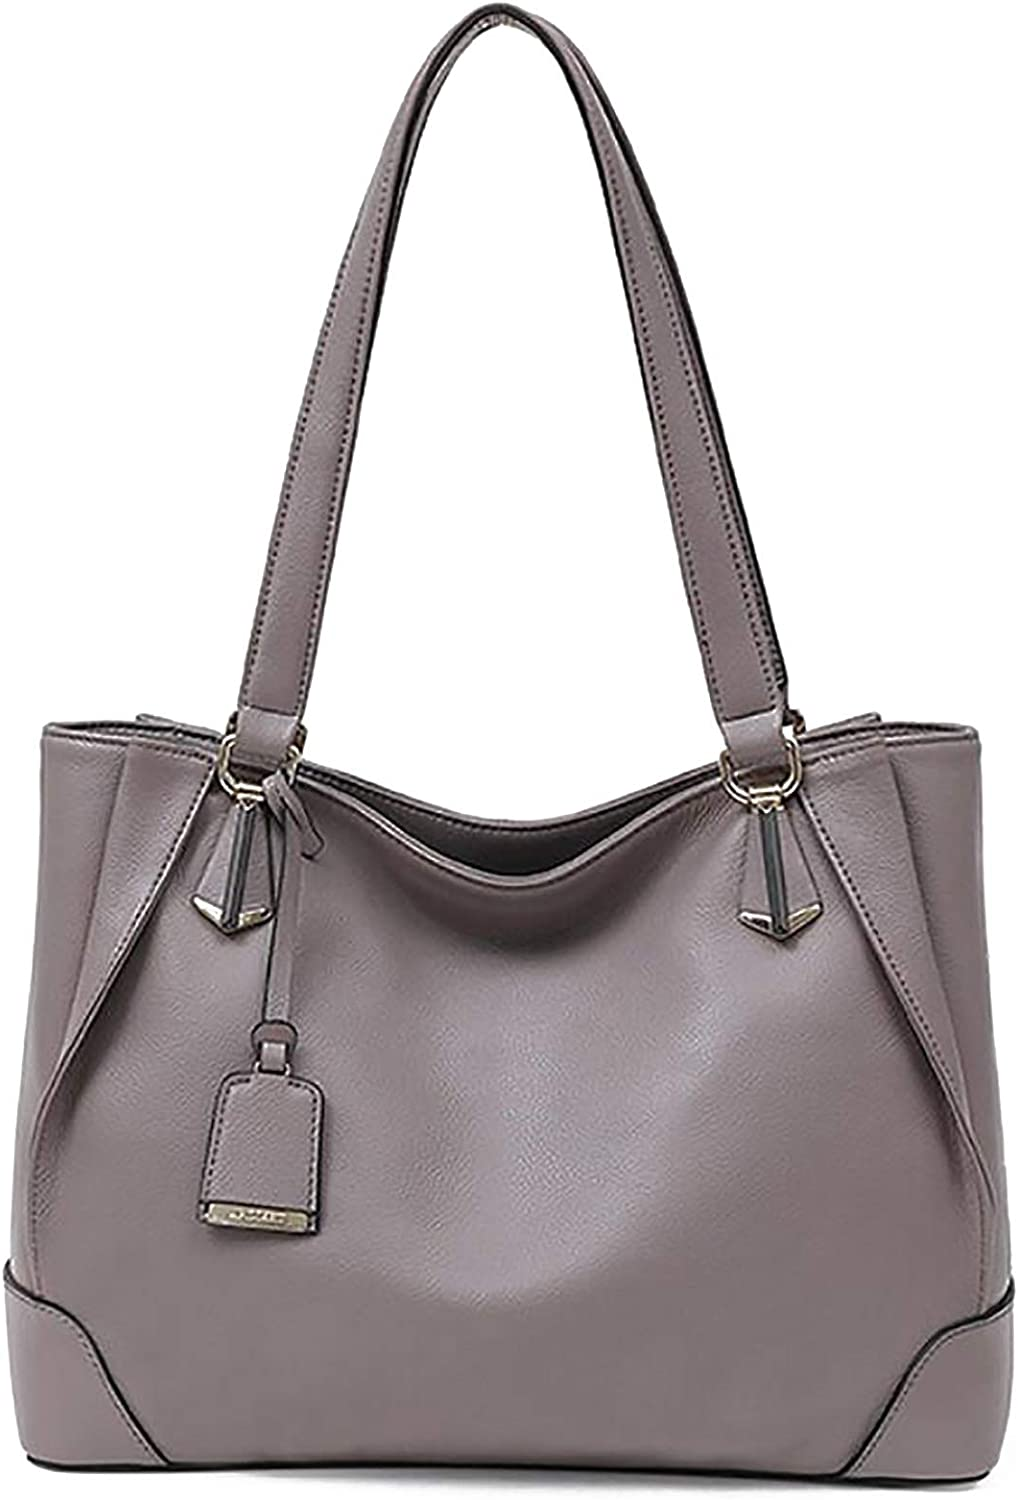 Ladies Fashion Wallets Ranking TOP16 High material and Handbags Leather Tote Sho Bags